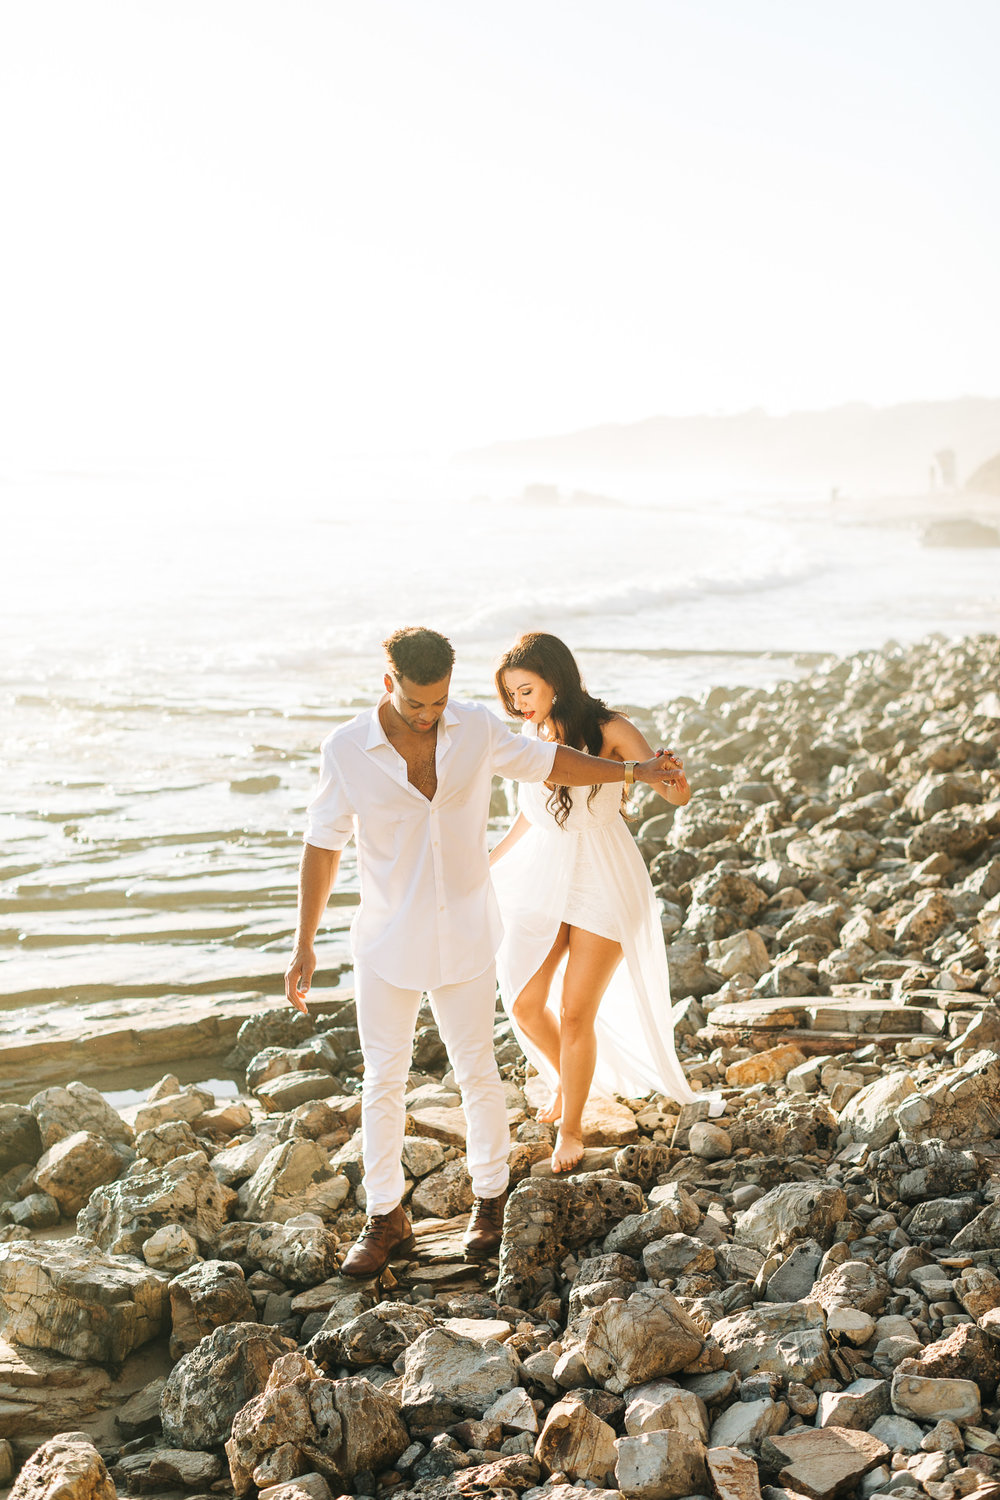 Nanis&Jay-Crystal-Cove-Beach-Engagement-Session-Clarisse-Rae-Photo-&-Video-Orange-County-Wedding-Photographer-&-Videographer_19.jpg